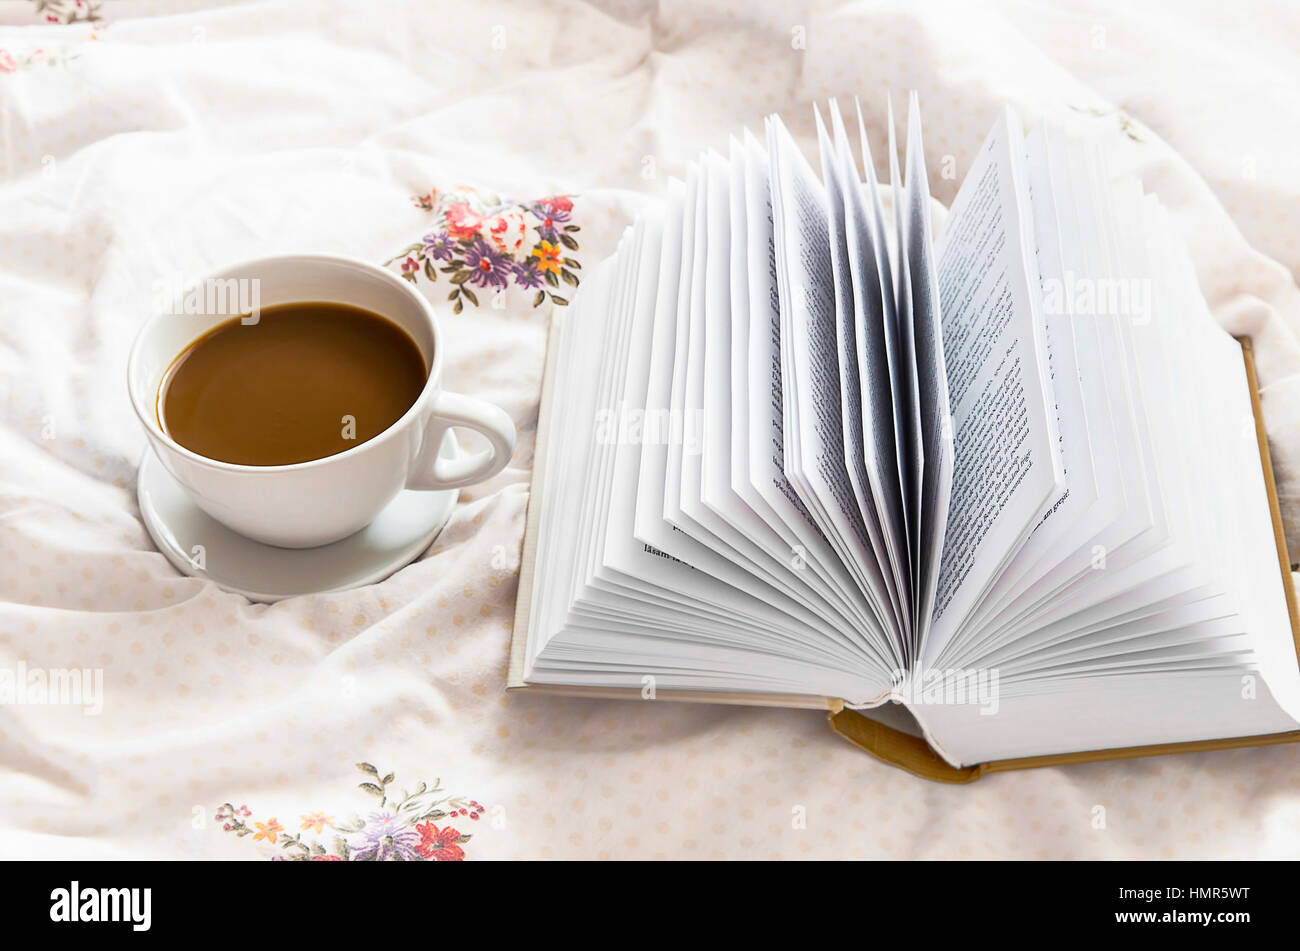 Still Life Coffee Cup And A Book In Bed On Floral Bed Sheets